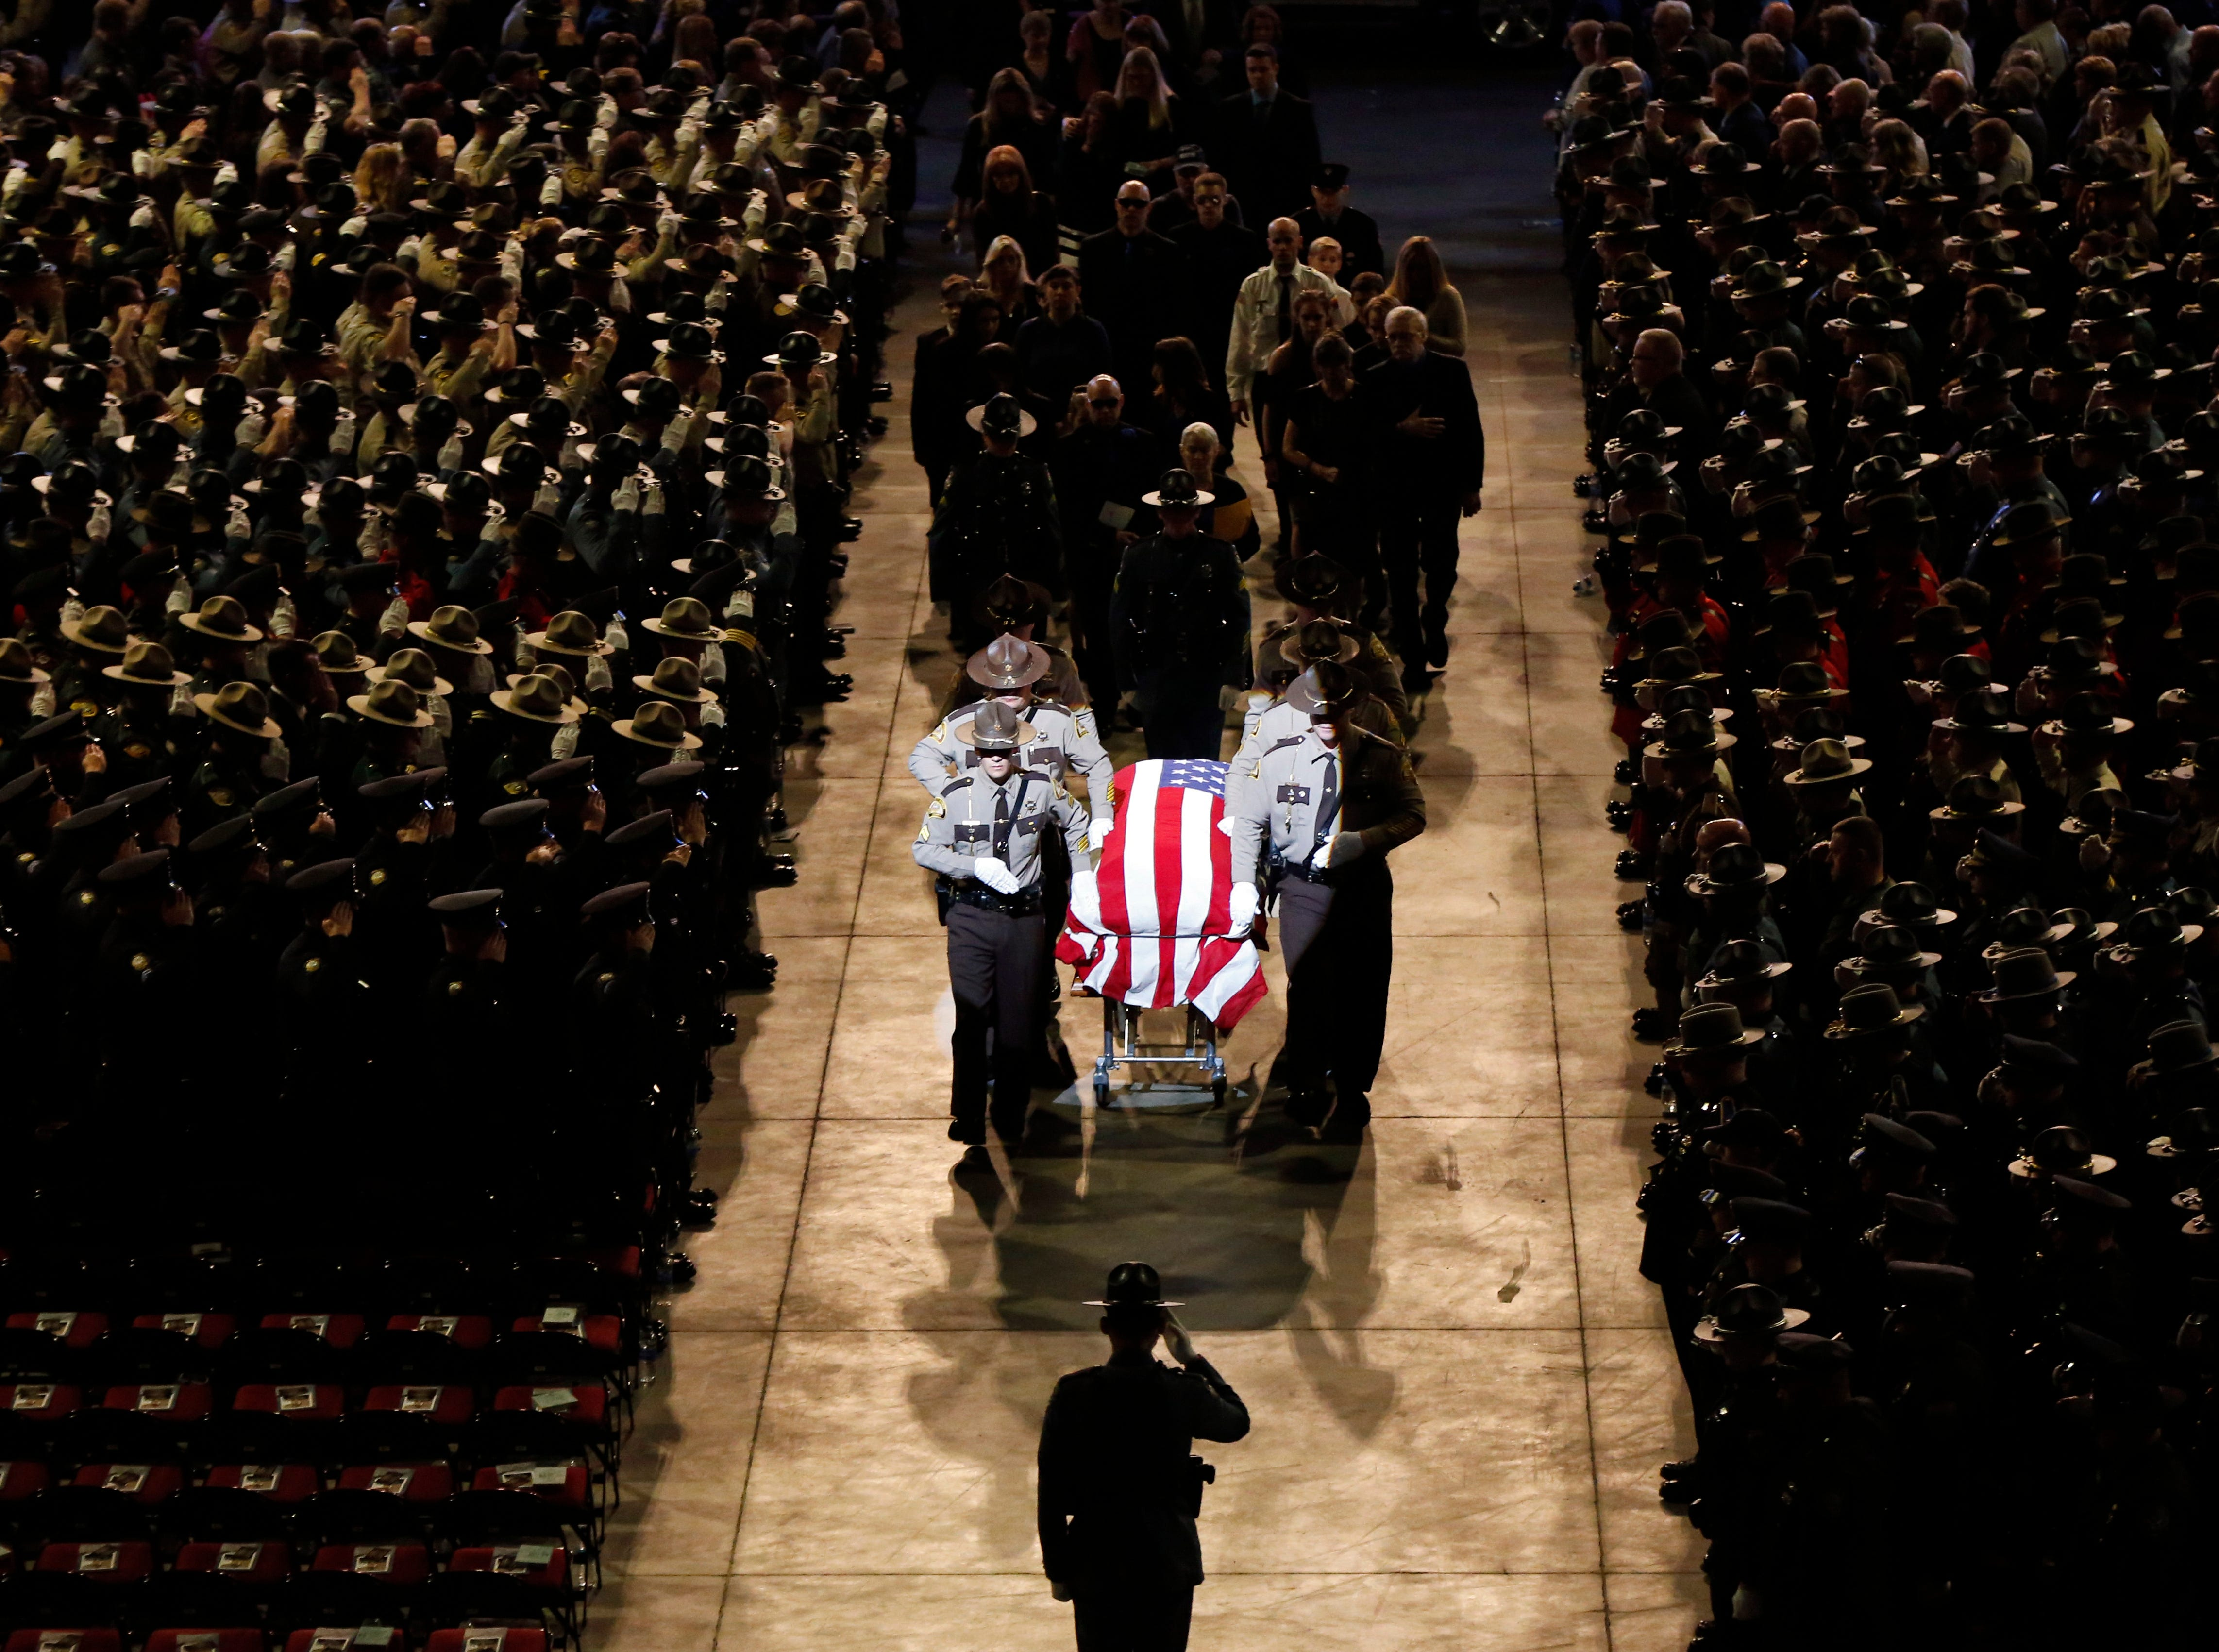 May 7, 2018: Pallbearers walk alongside the casket of Cpl. Eugene Cole at the conclusion of the funeral service at the Cross Insurance Center in Bangor, Maine. Cole, a sheriff's deputy, was the first officer to be killed in the line of duty in Maine in nearly 30 years when he was killed early on April 25 in Norridgewock.